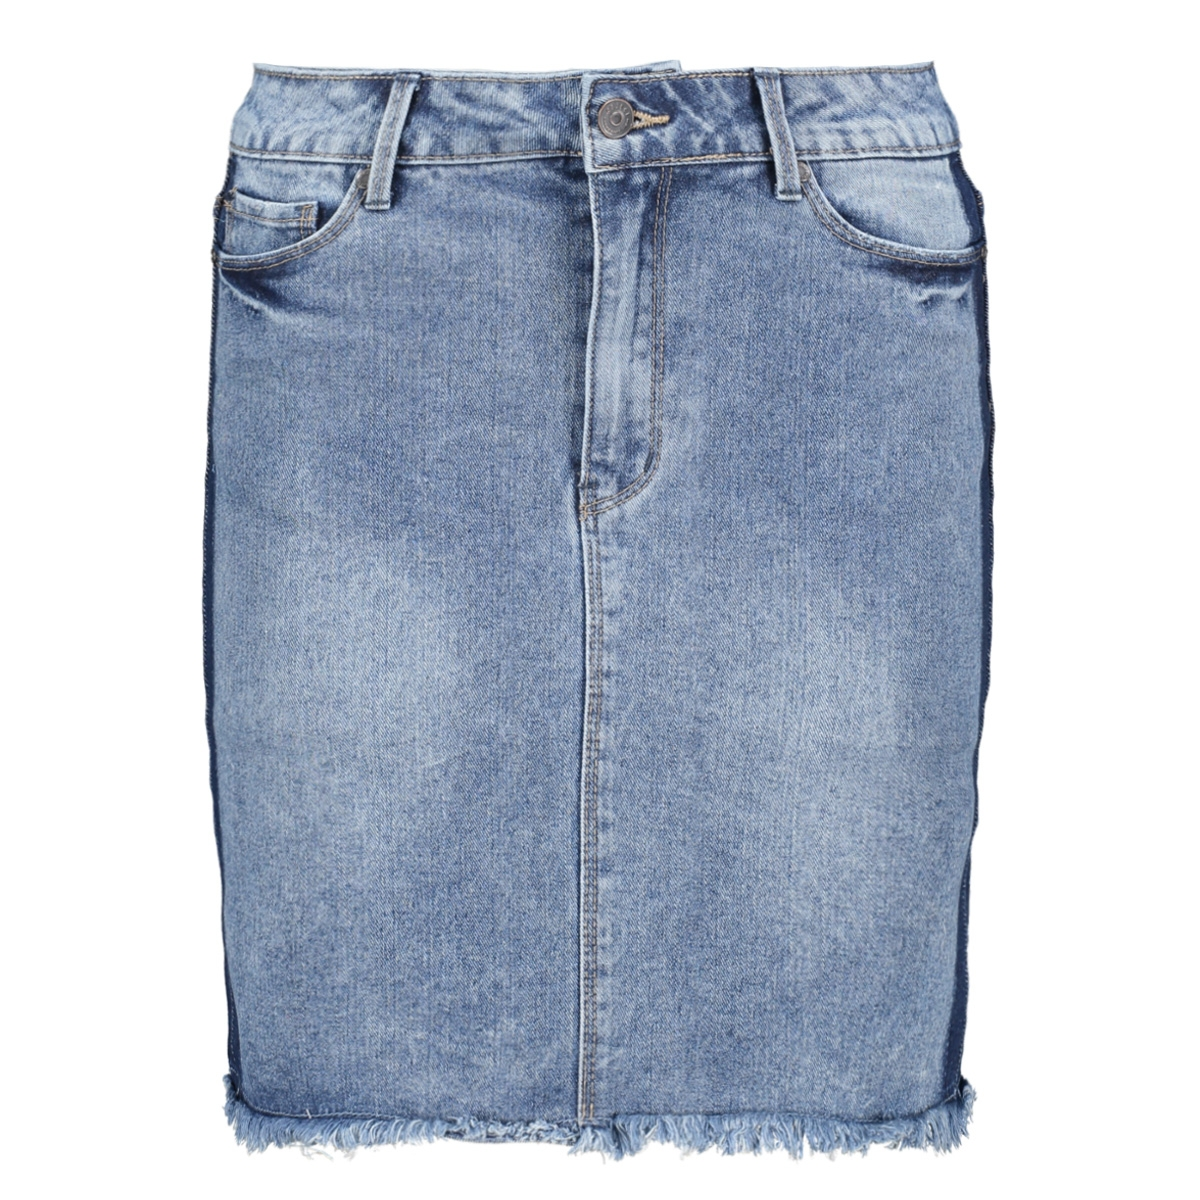 objroberta sarah denim skirt 103 23029517 object rok medium blue denim